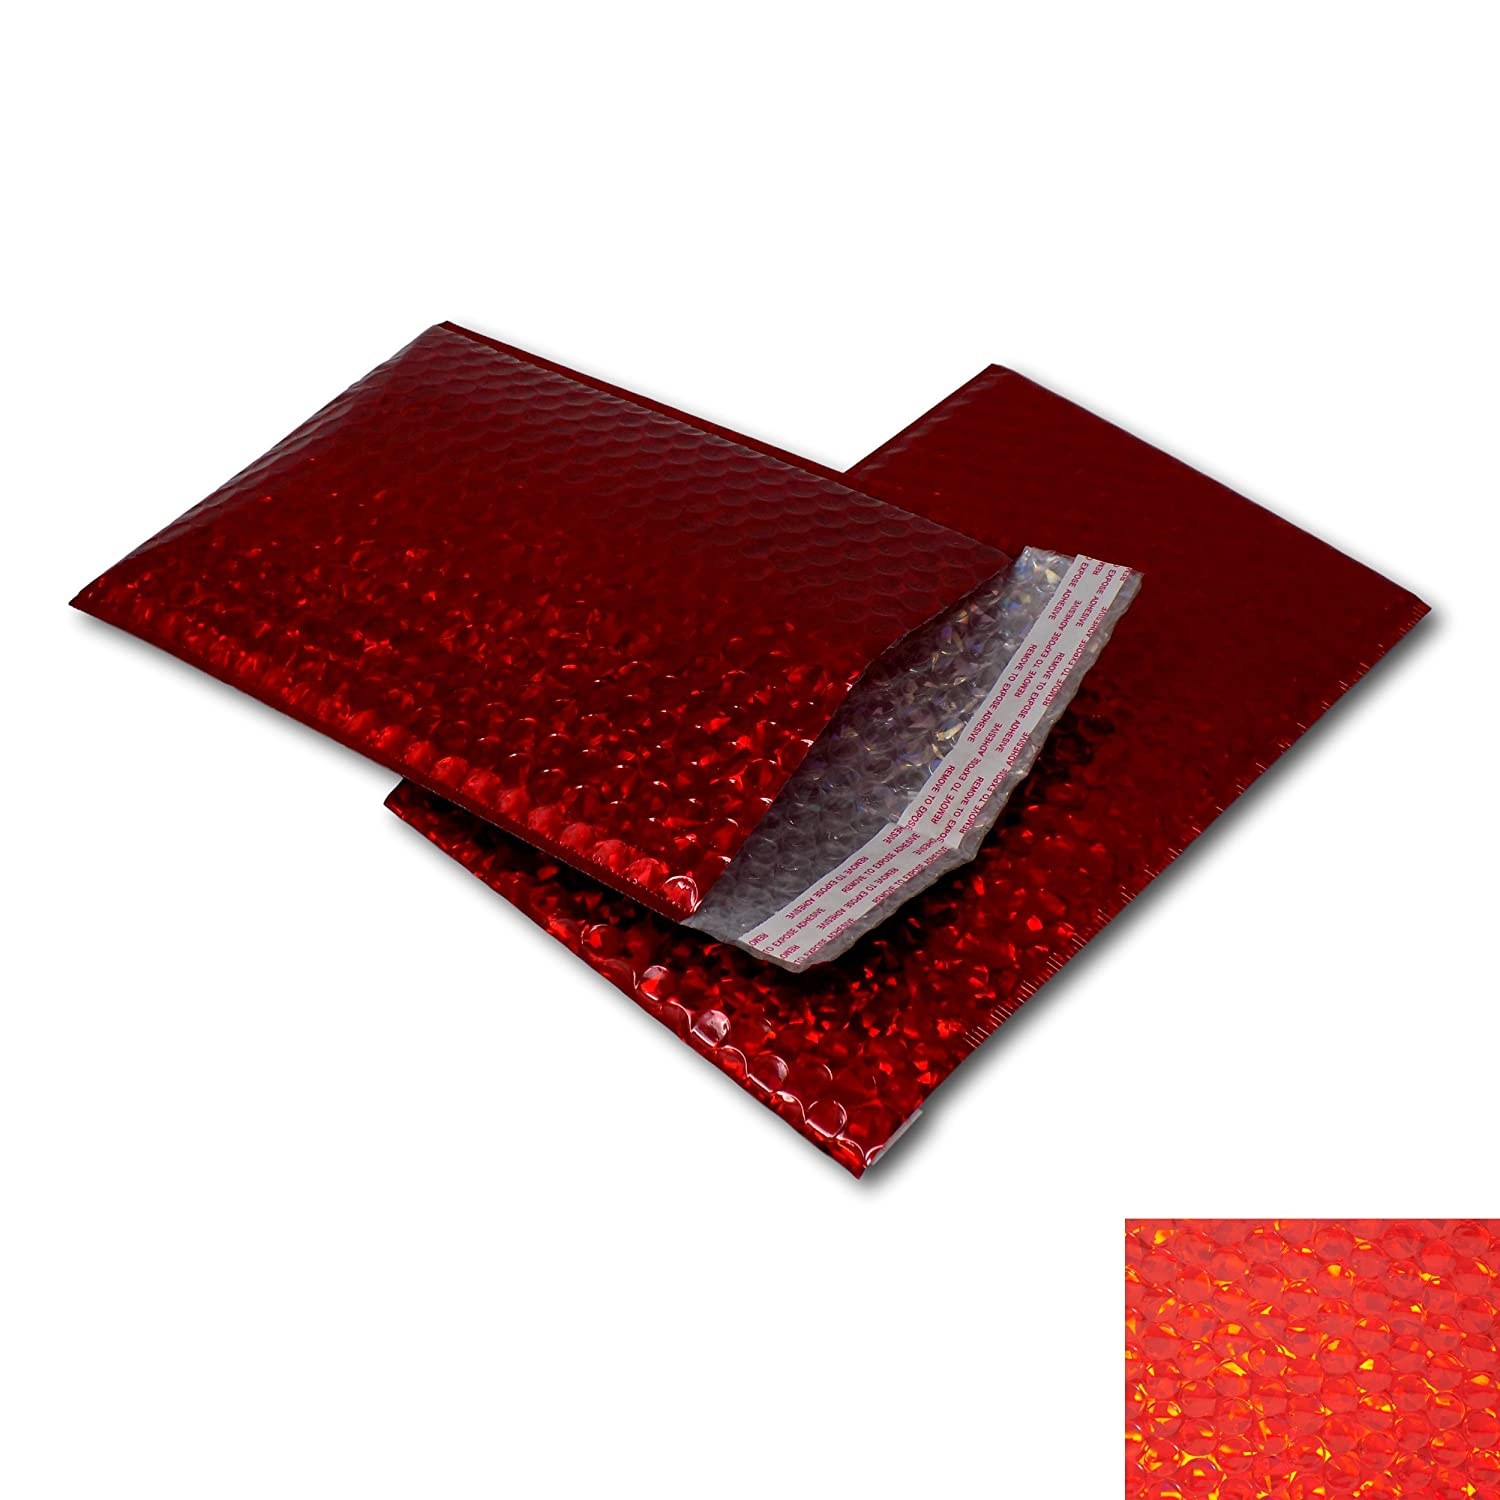 EPOSGEAR 10 Pack Red Holographic Metallic Gloss Foil Padded Bubble Mailing Gift Postal Bag Envelopes - Perfect for mailing or as an alternative to gift wrap for Christmas, Birthdays etc (165mm x 165mm - CD)